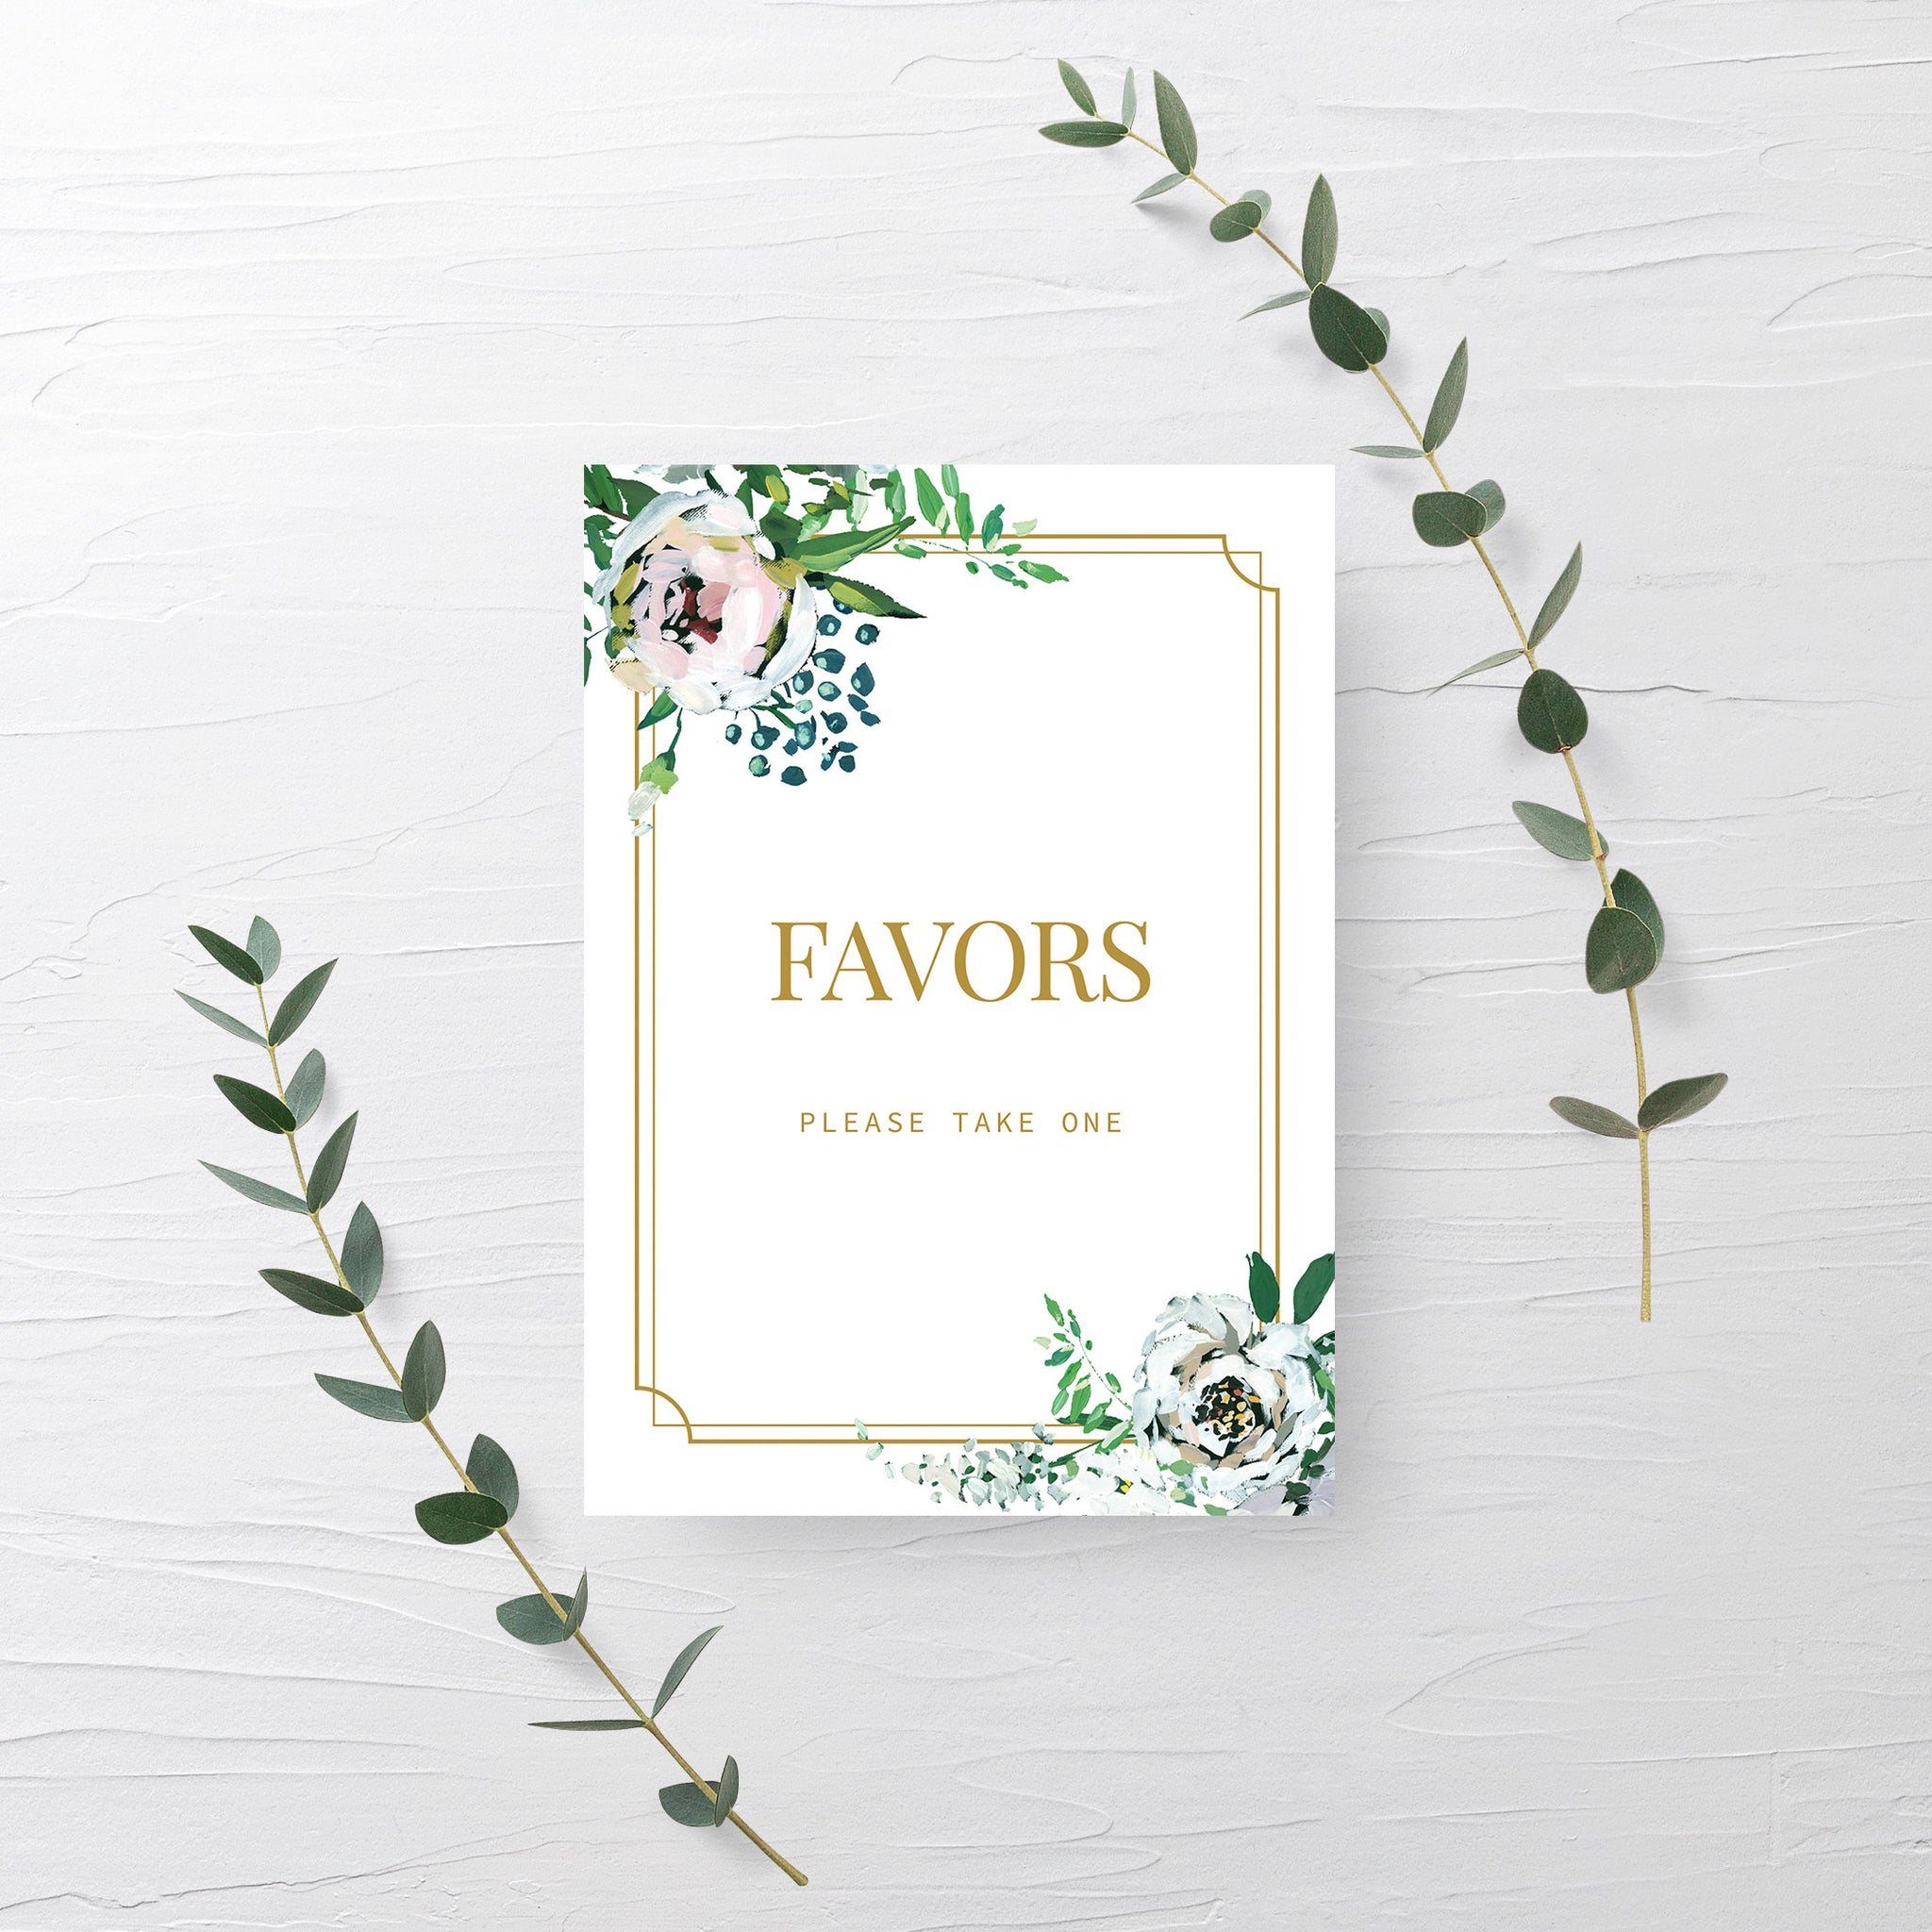 Blush Floral Greenery Favor Sign Printable INSTANT DOWNLOAD, Gold Birthday, Baby Shower, Bridal Shower, Wedding Decoration - BGF100 - @PlumPolkaDot